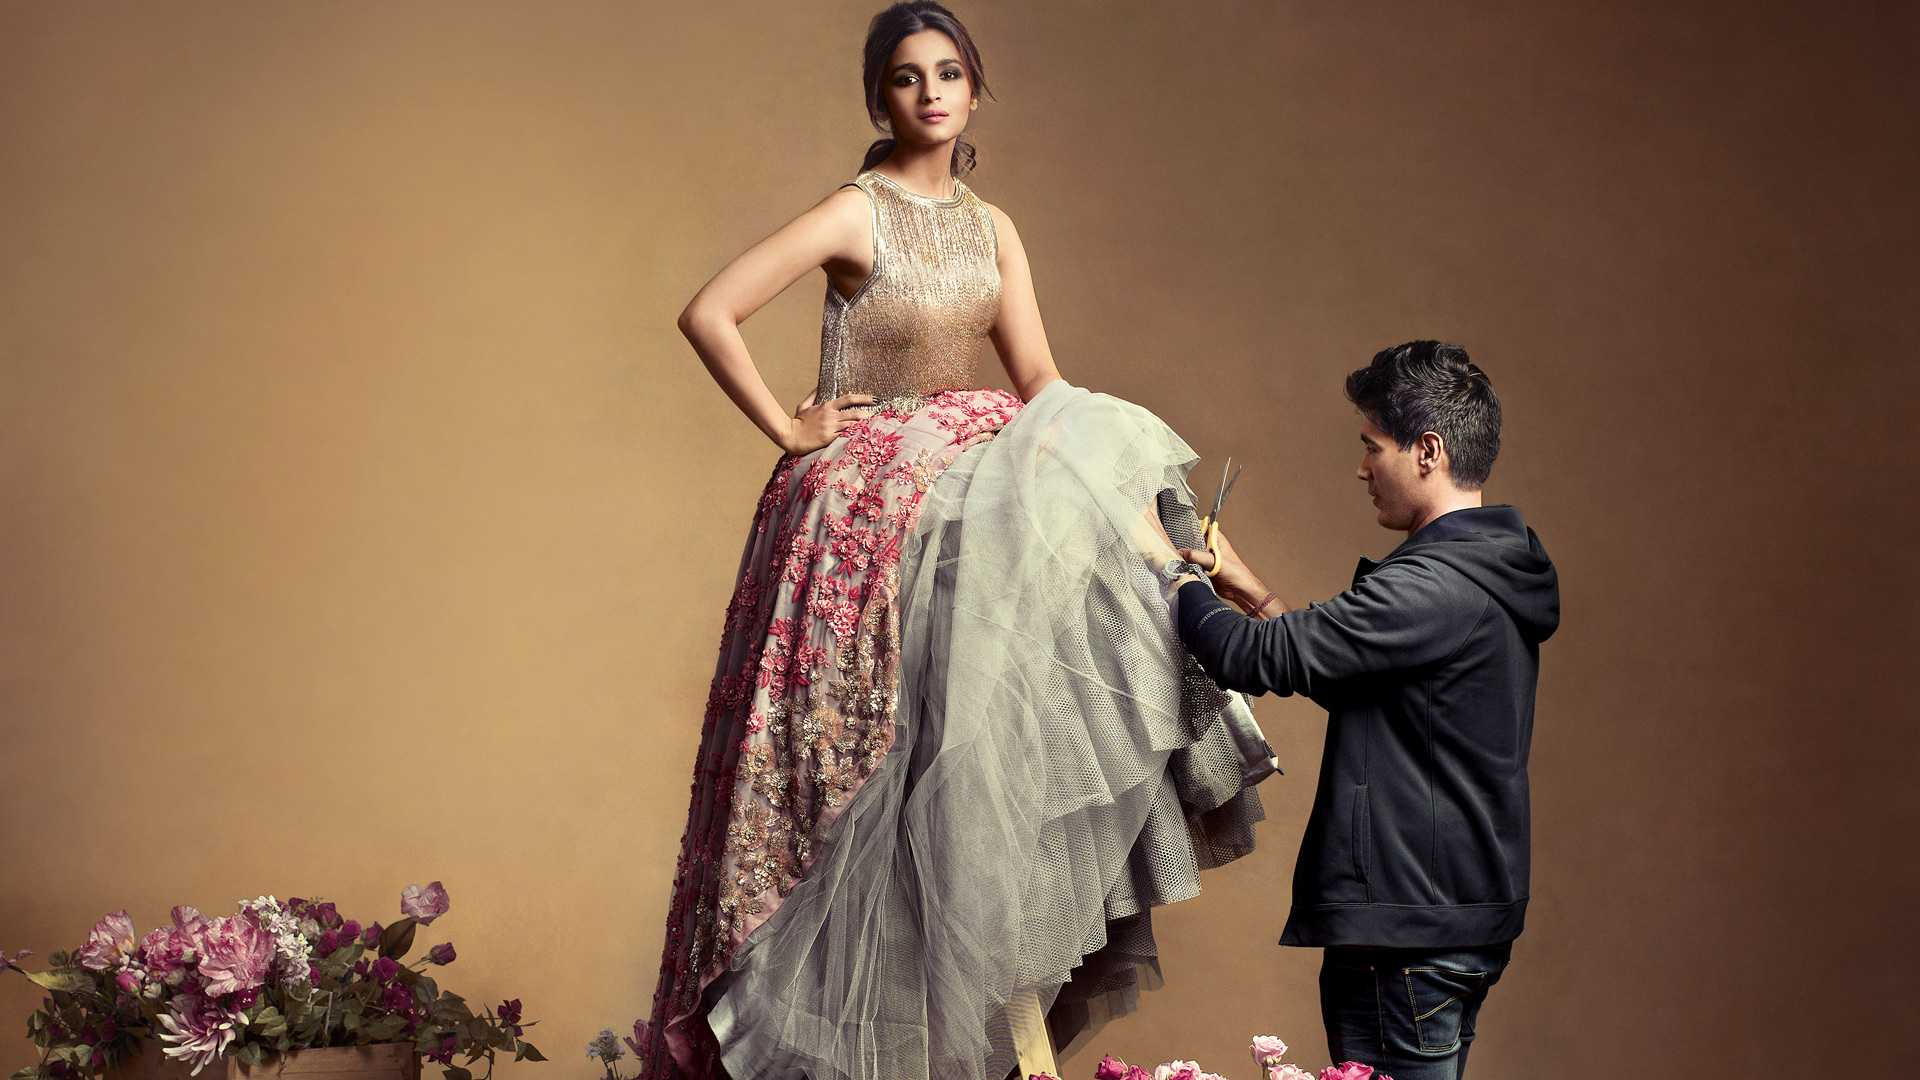 Manish Malhotra on 25 years of film fashion and finding his voice  Vogue India  Fashion  Insider